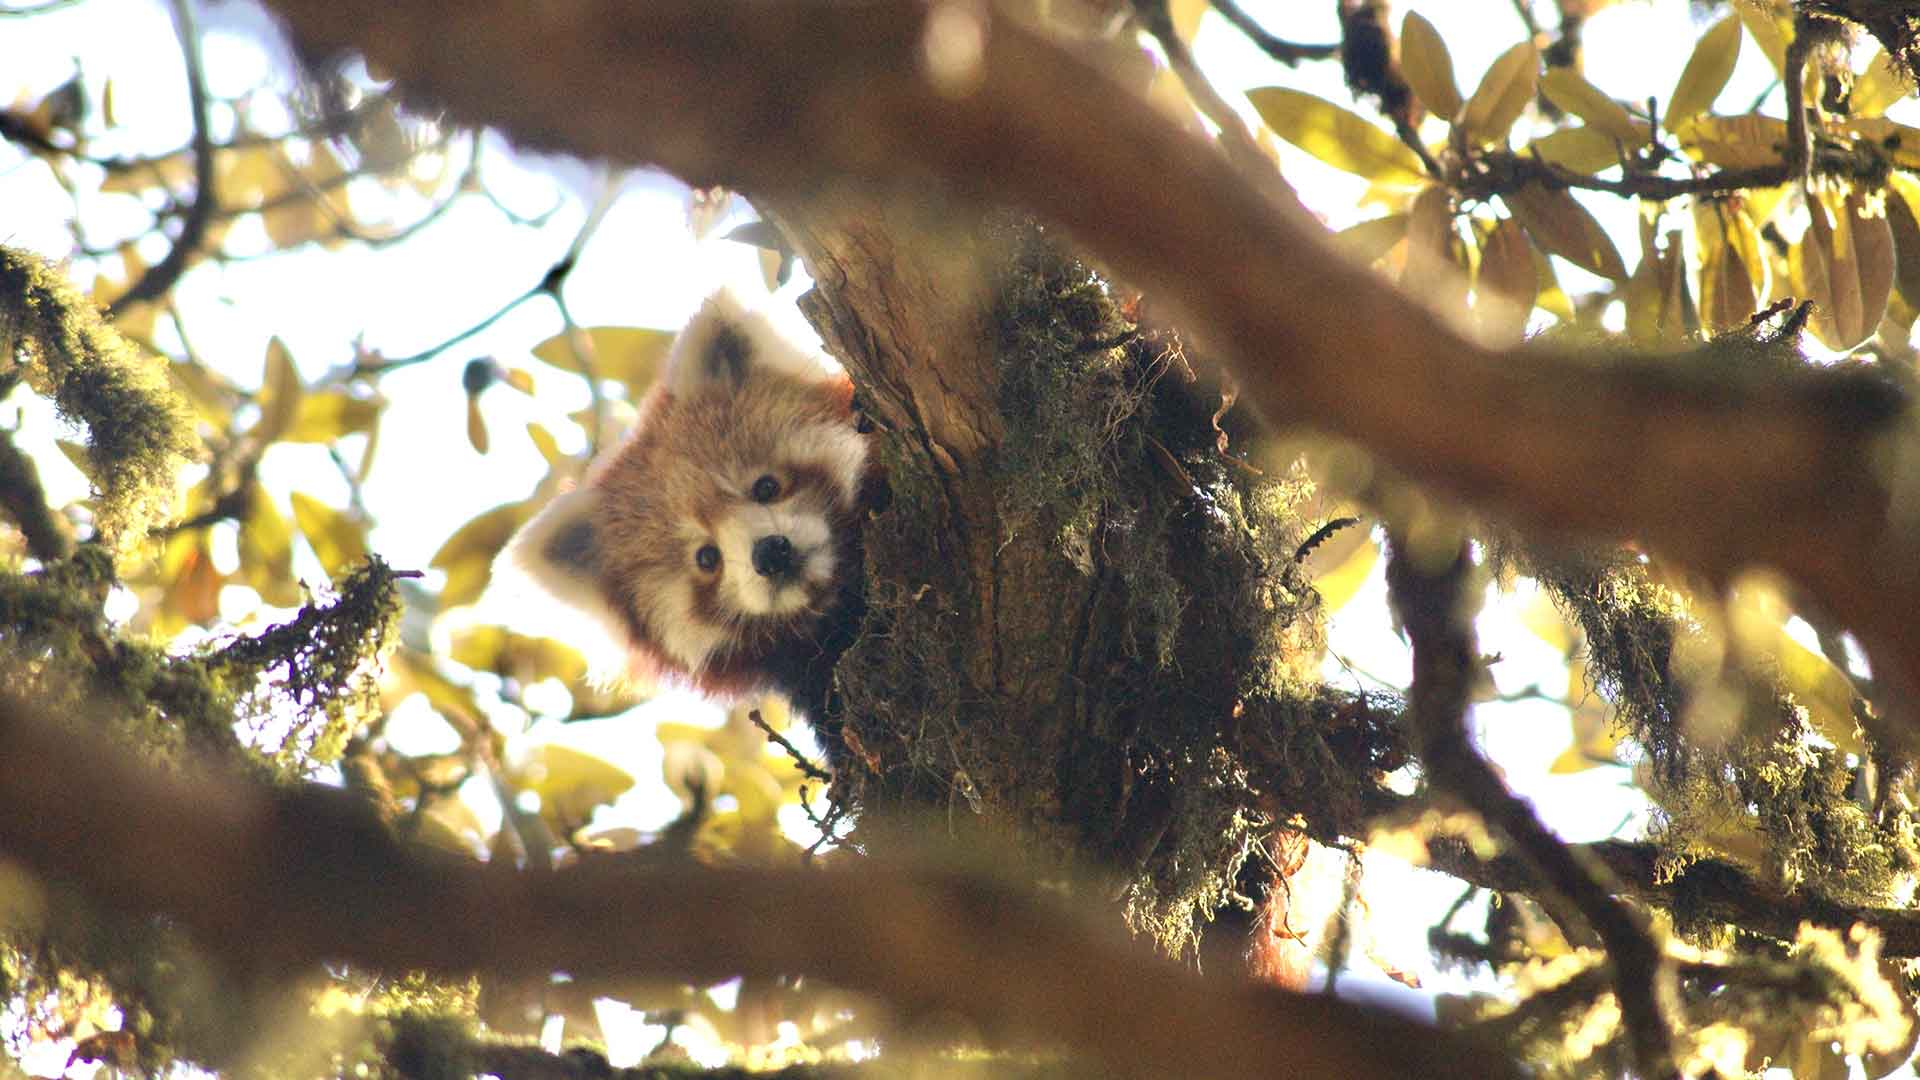 https://rfacdn.nz/zoo/assets/media/red-panda-up-tree-nepal-gallery-3.jpg